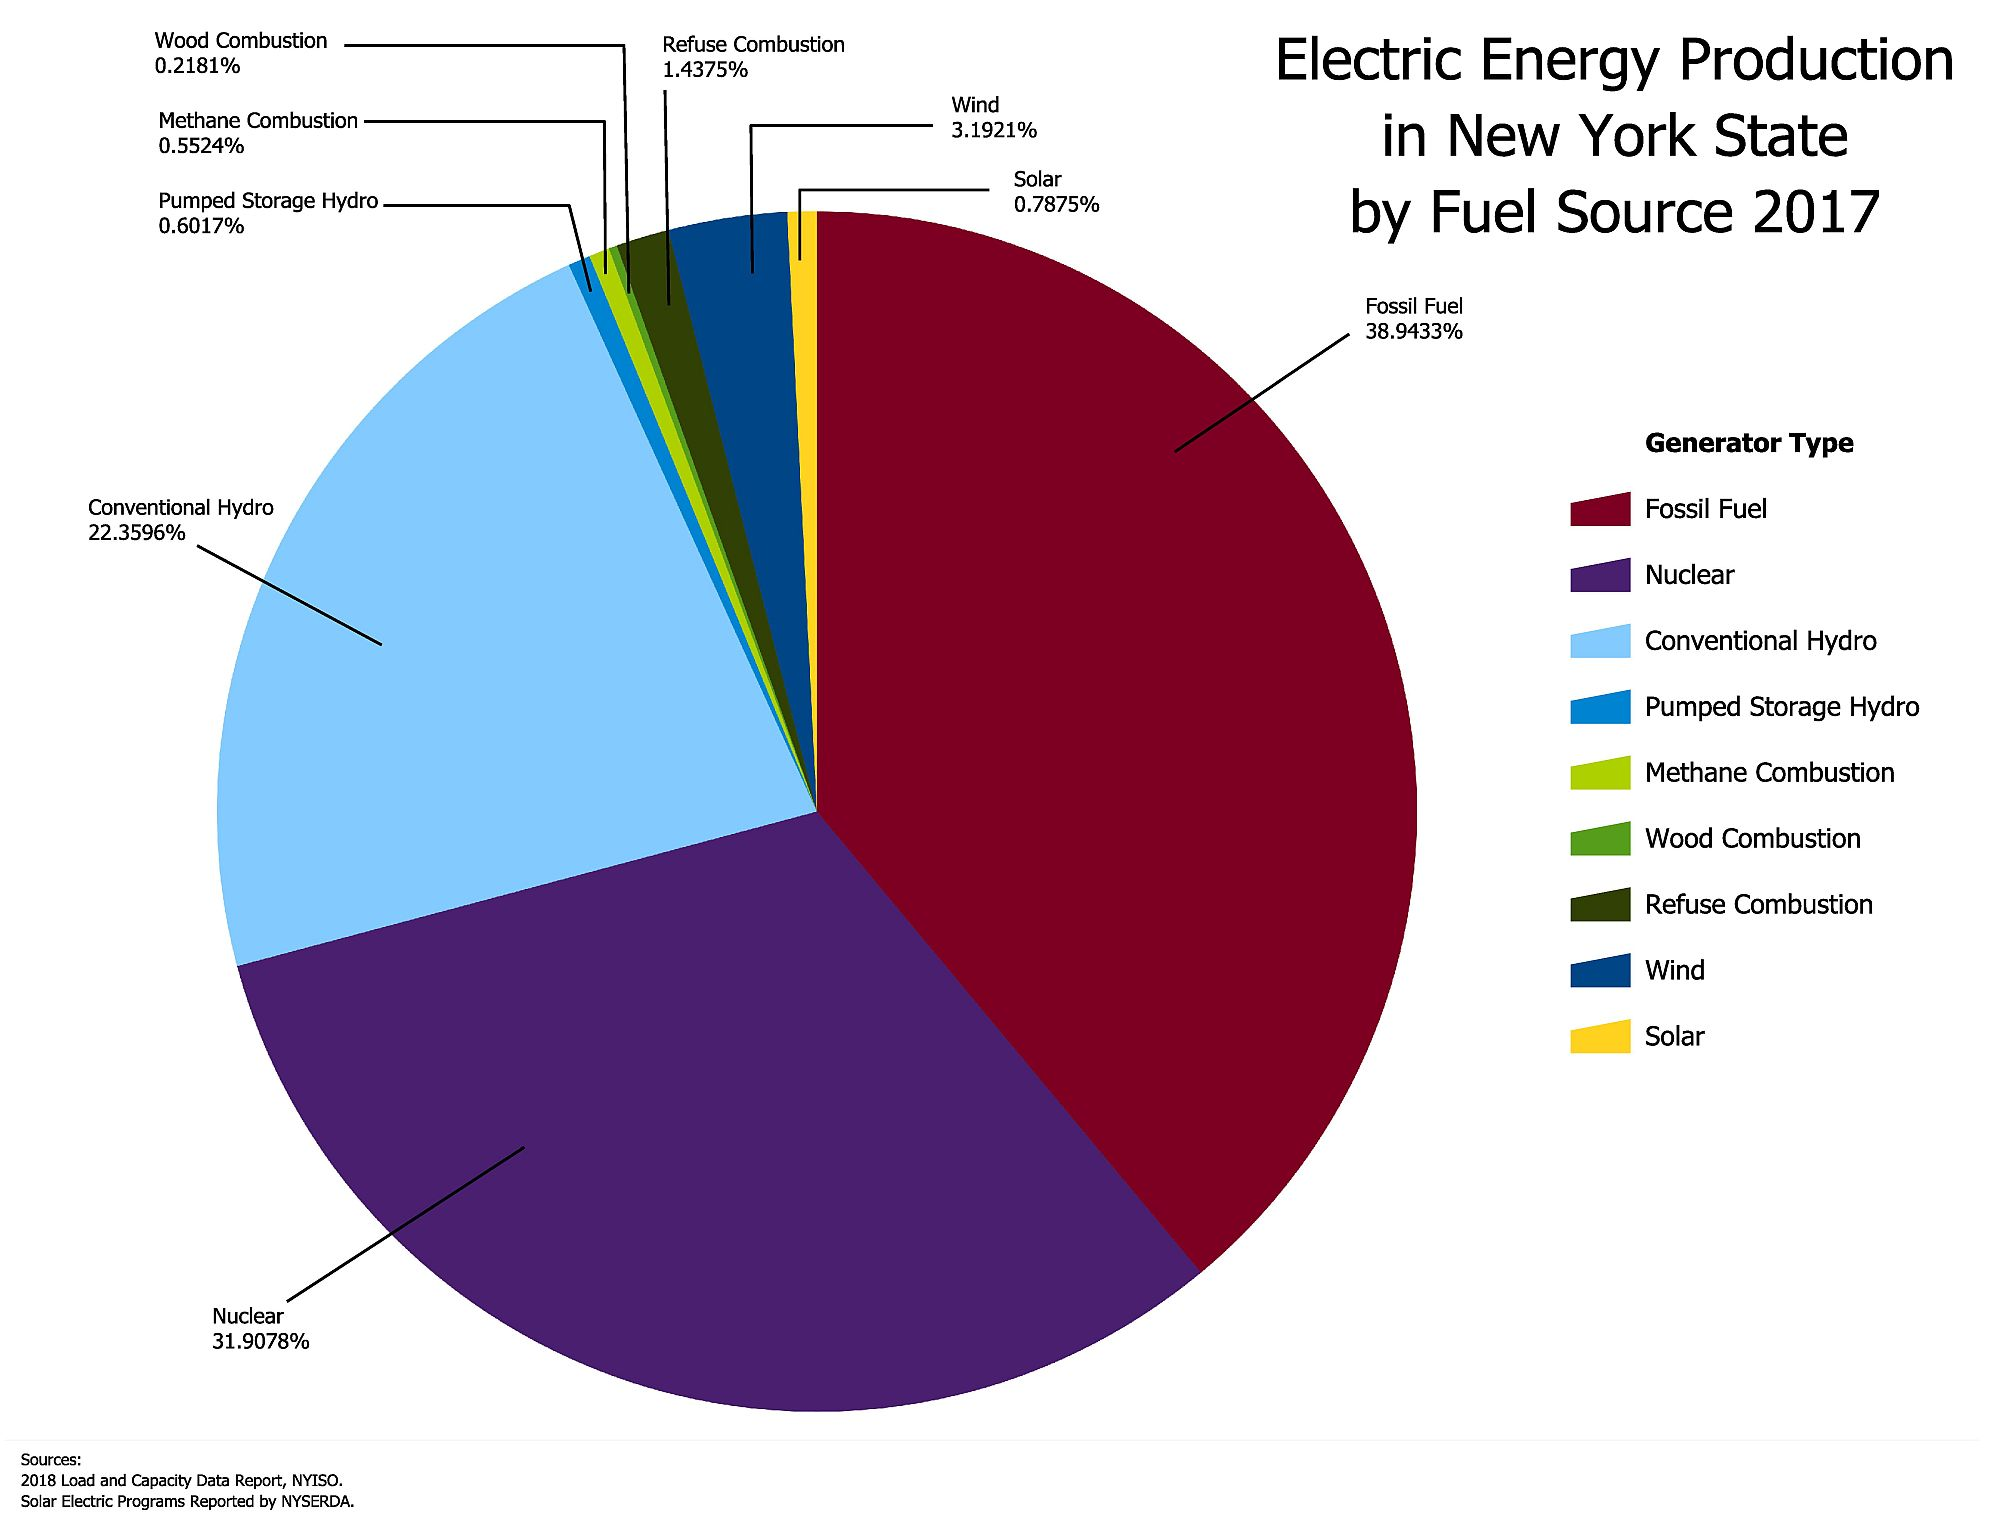 2017 2018 Campaign To End New Yorks Addiction Fossil Fuel Energy Diagram For The Generation Of Electricity From A Such As See Electric Production In York State By Source And United States